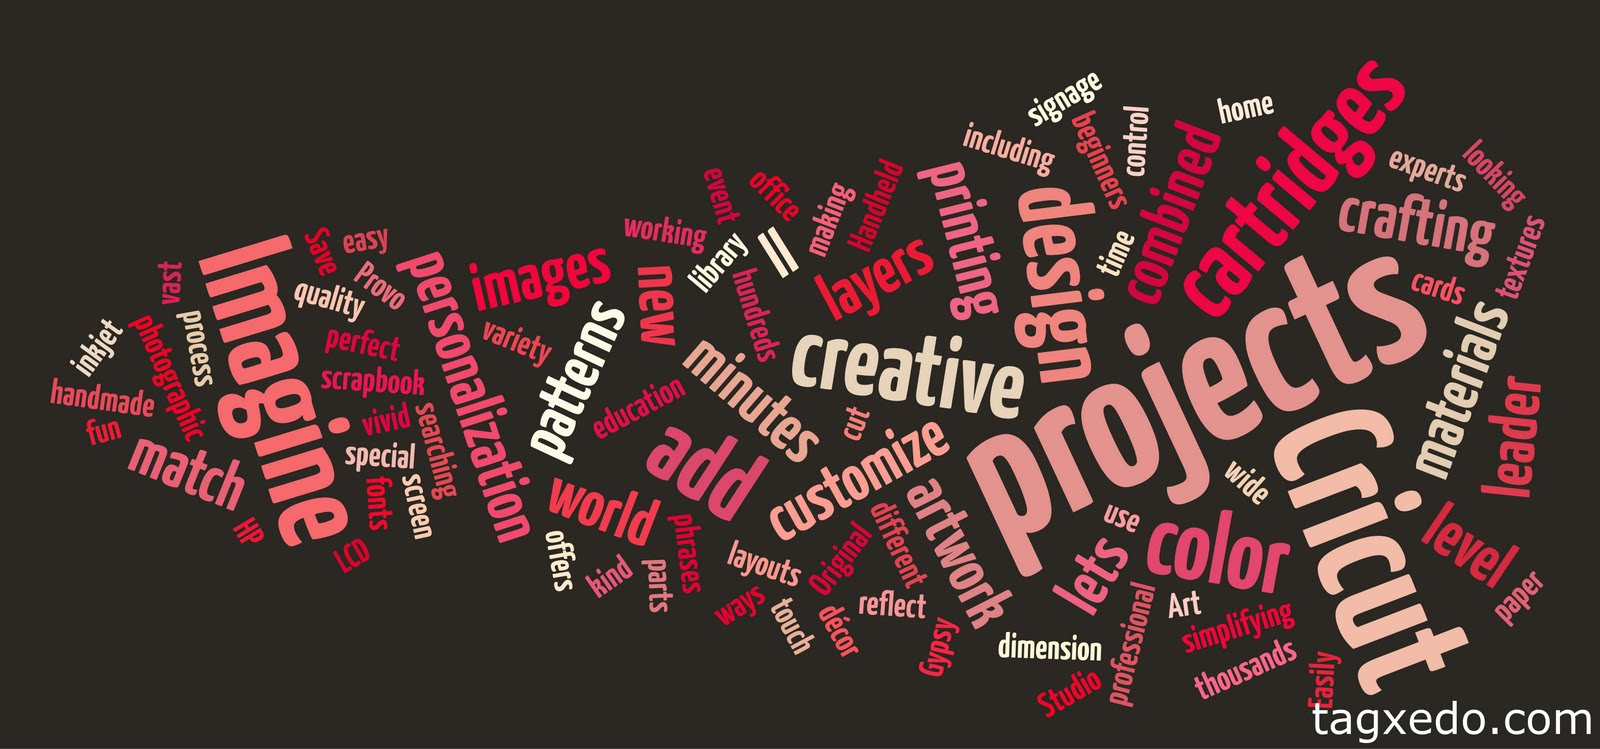 Capadia designs another great site for word clouds this site is called tagxedo and it has lots of interesting options for the image at the top of this post i used the description of the cricut imagine freerunsca Choice Image